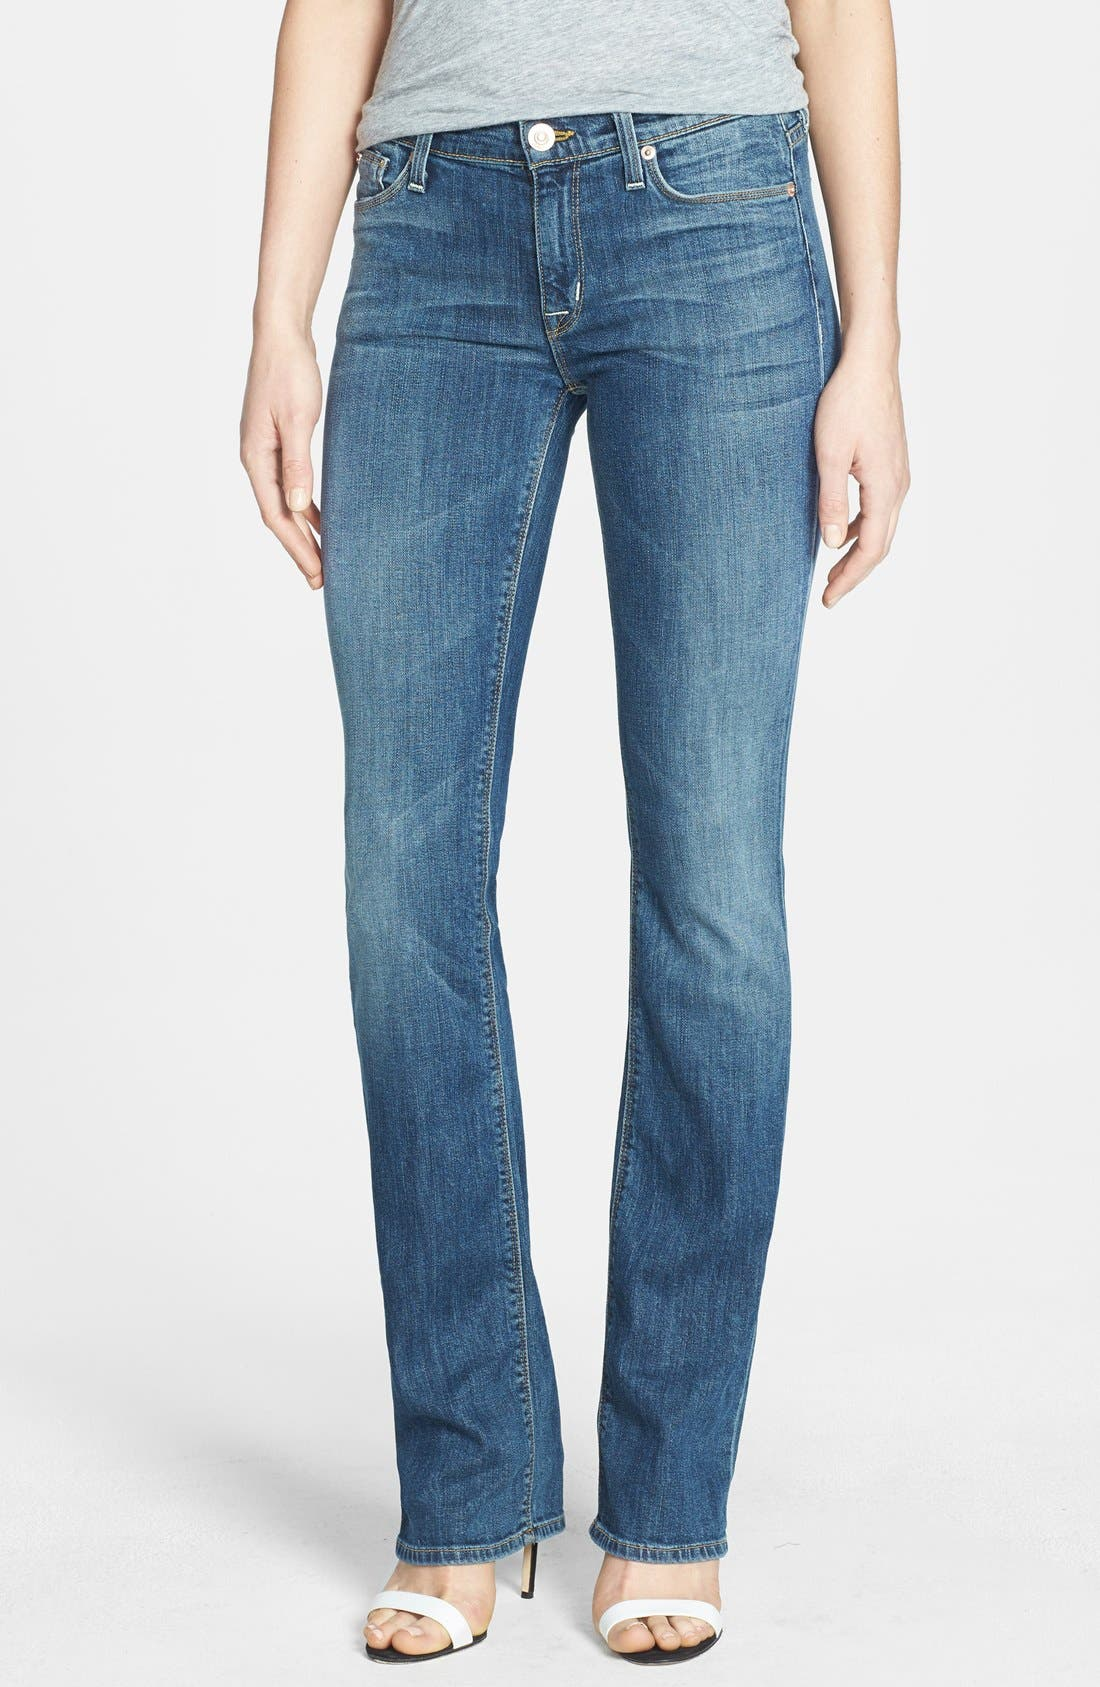 Main Image - Hudson Jeans 'Elle' Baby Bootcut Jeans (Hackney)